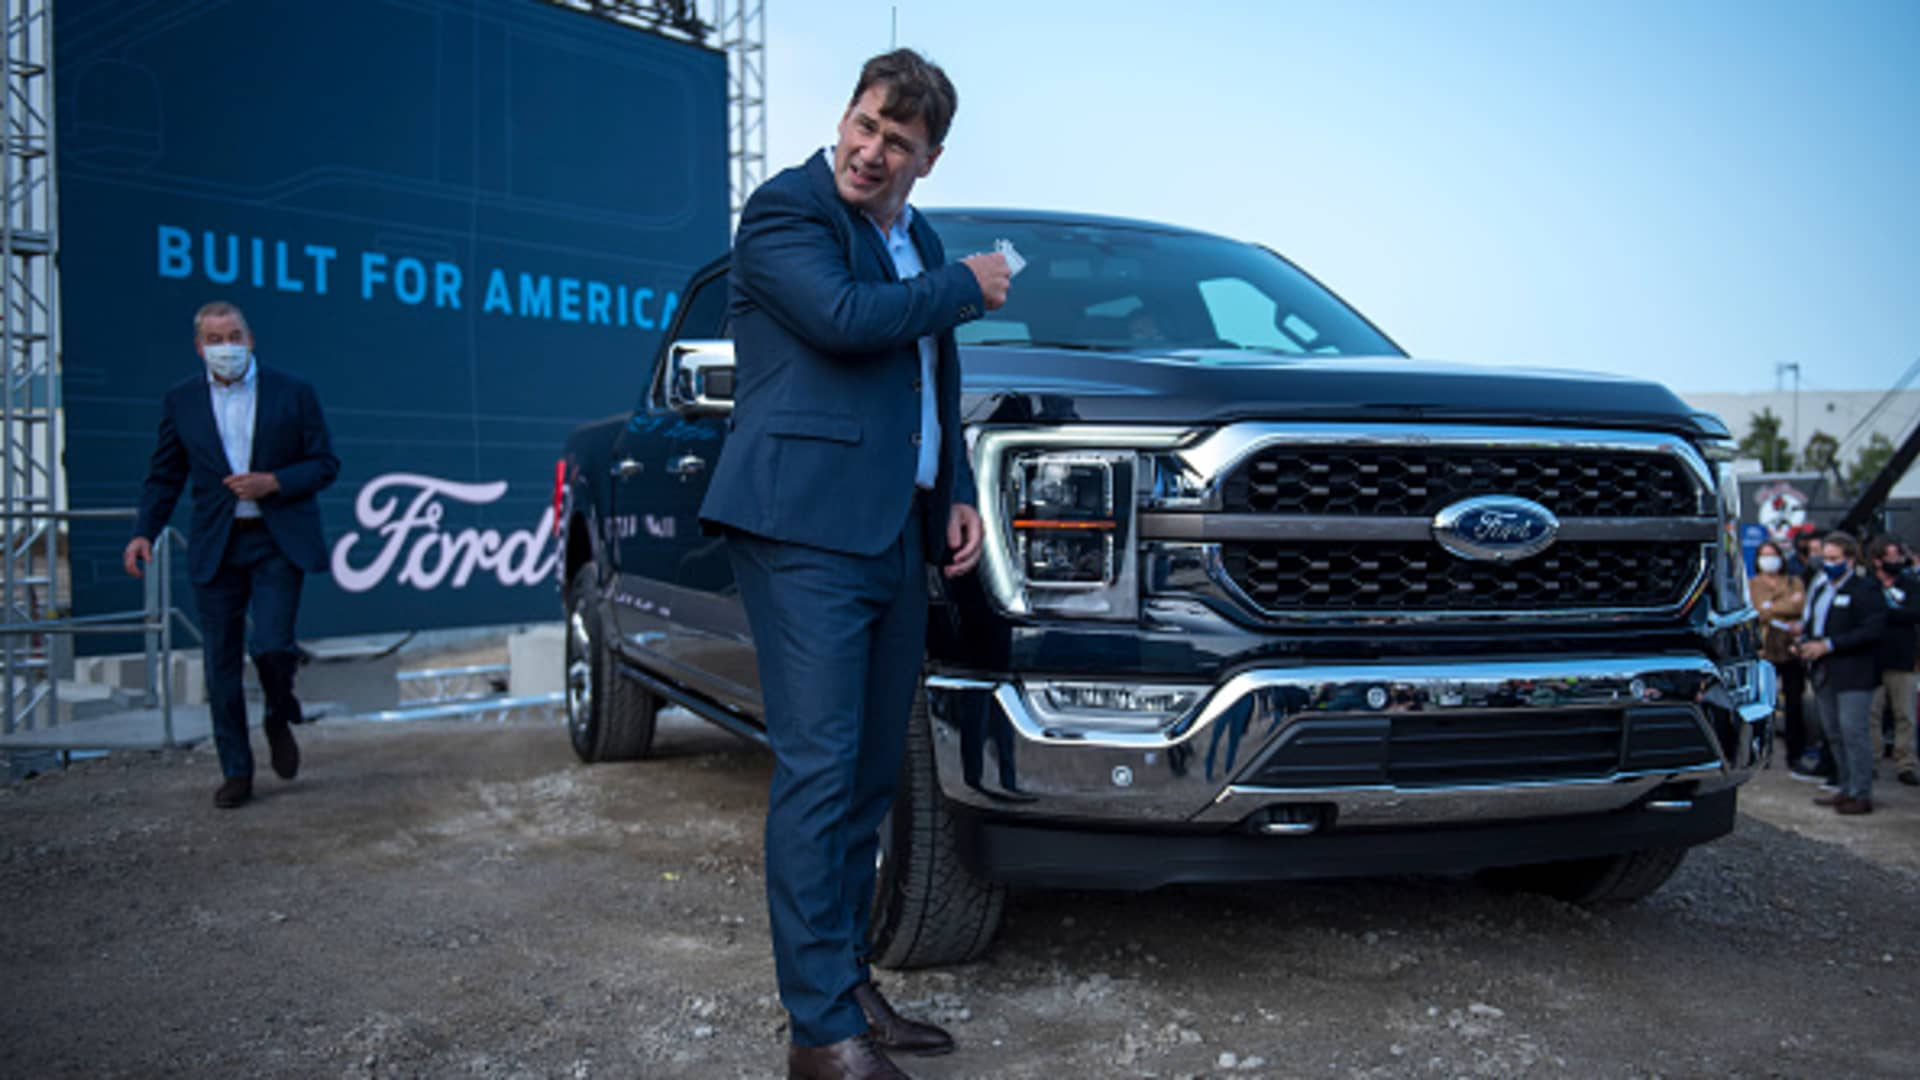 Ford CEO Jim Farley takes off his mask at the Ford Built for America event at Fords Dearborn Truck Plant on September 17, 2020 in Dearborn, Michigan.